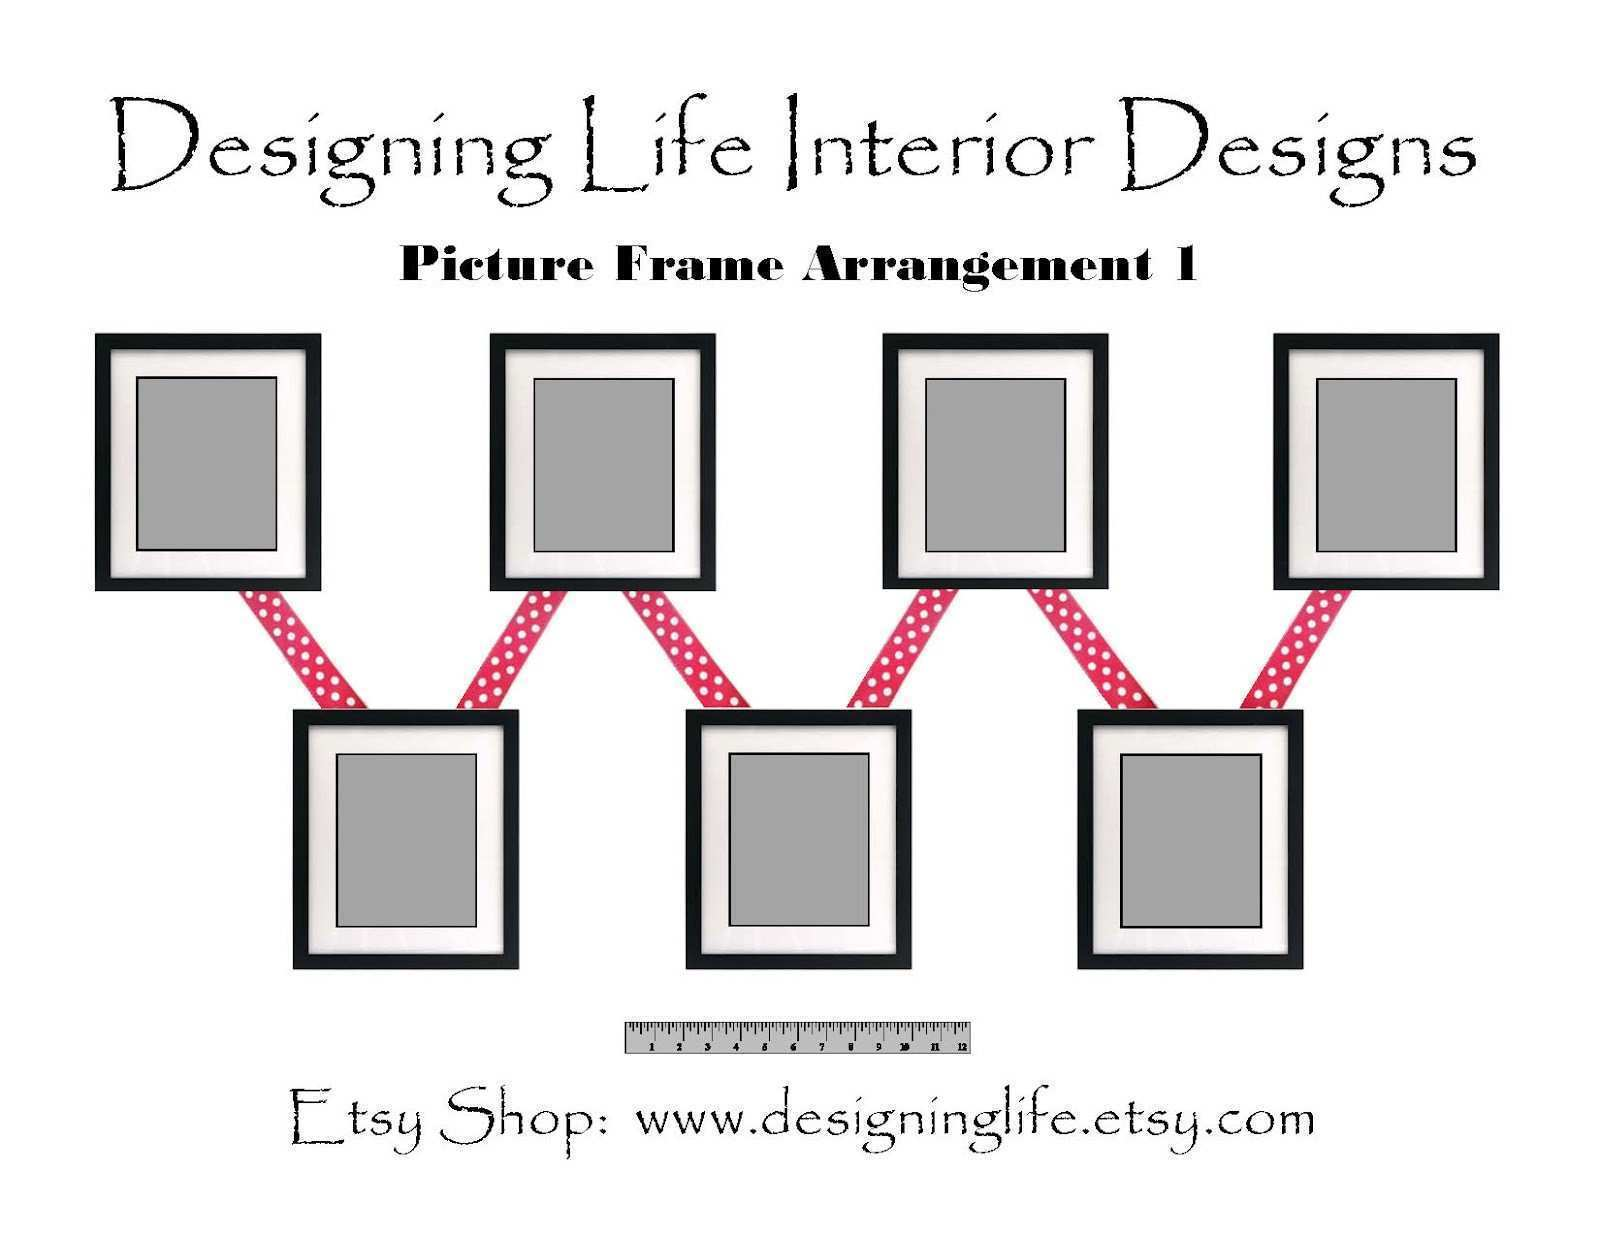 Designing Life How to Arrange Picture Displays on a Wall Six